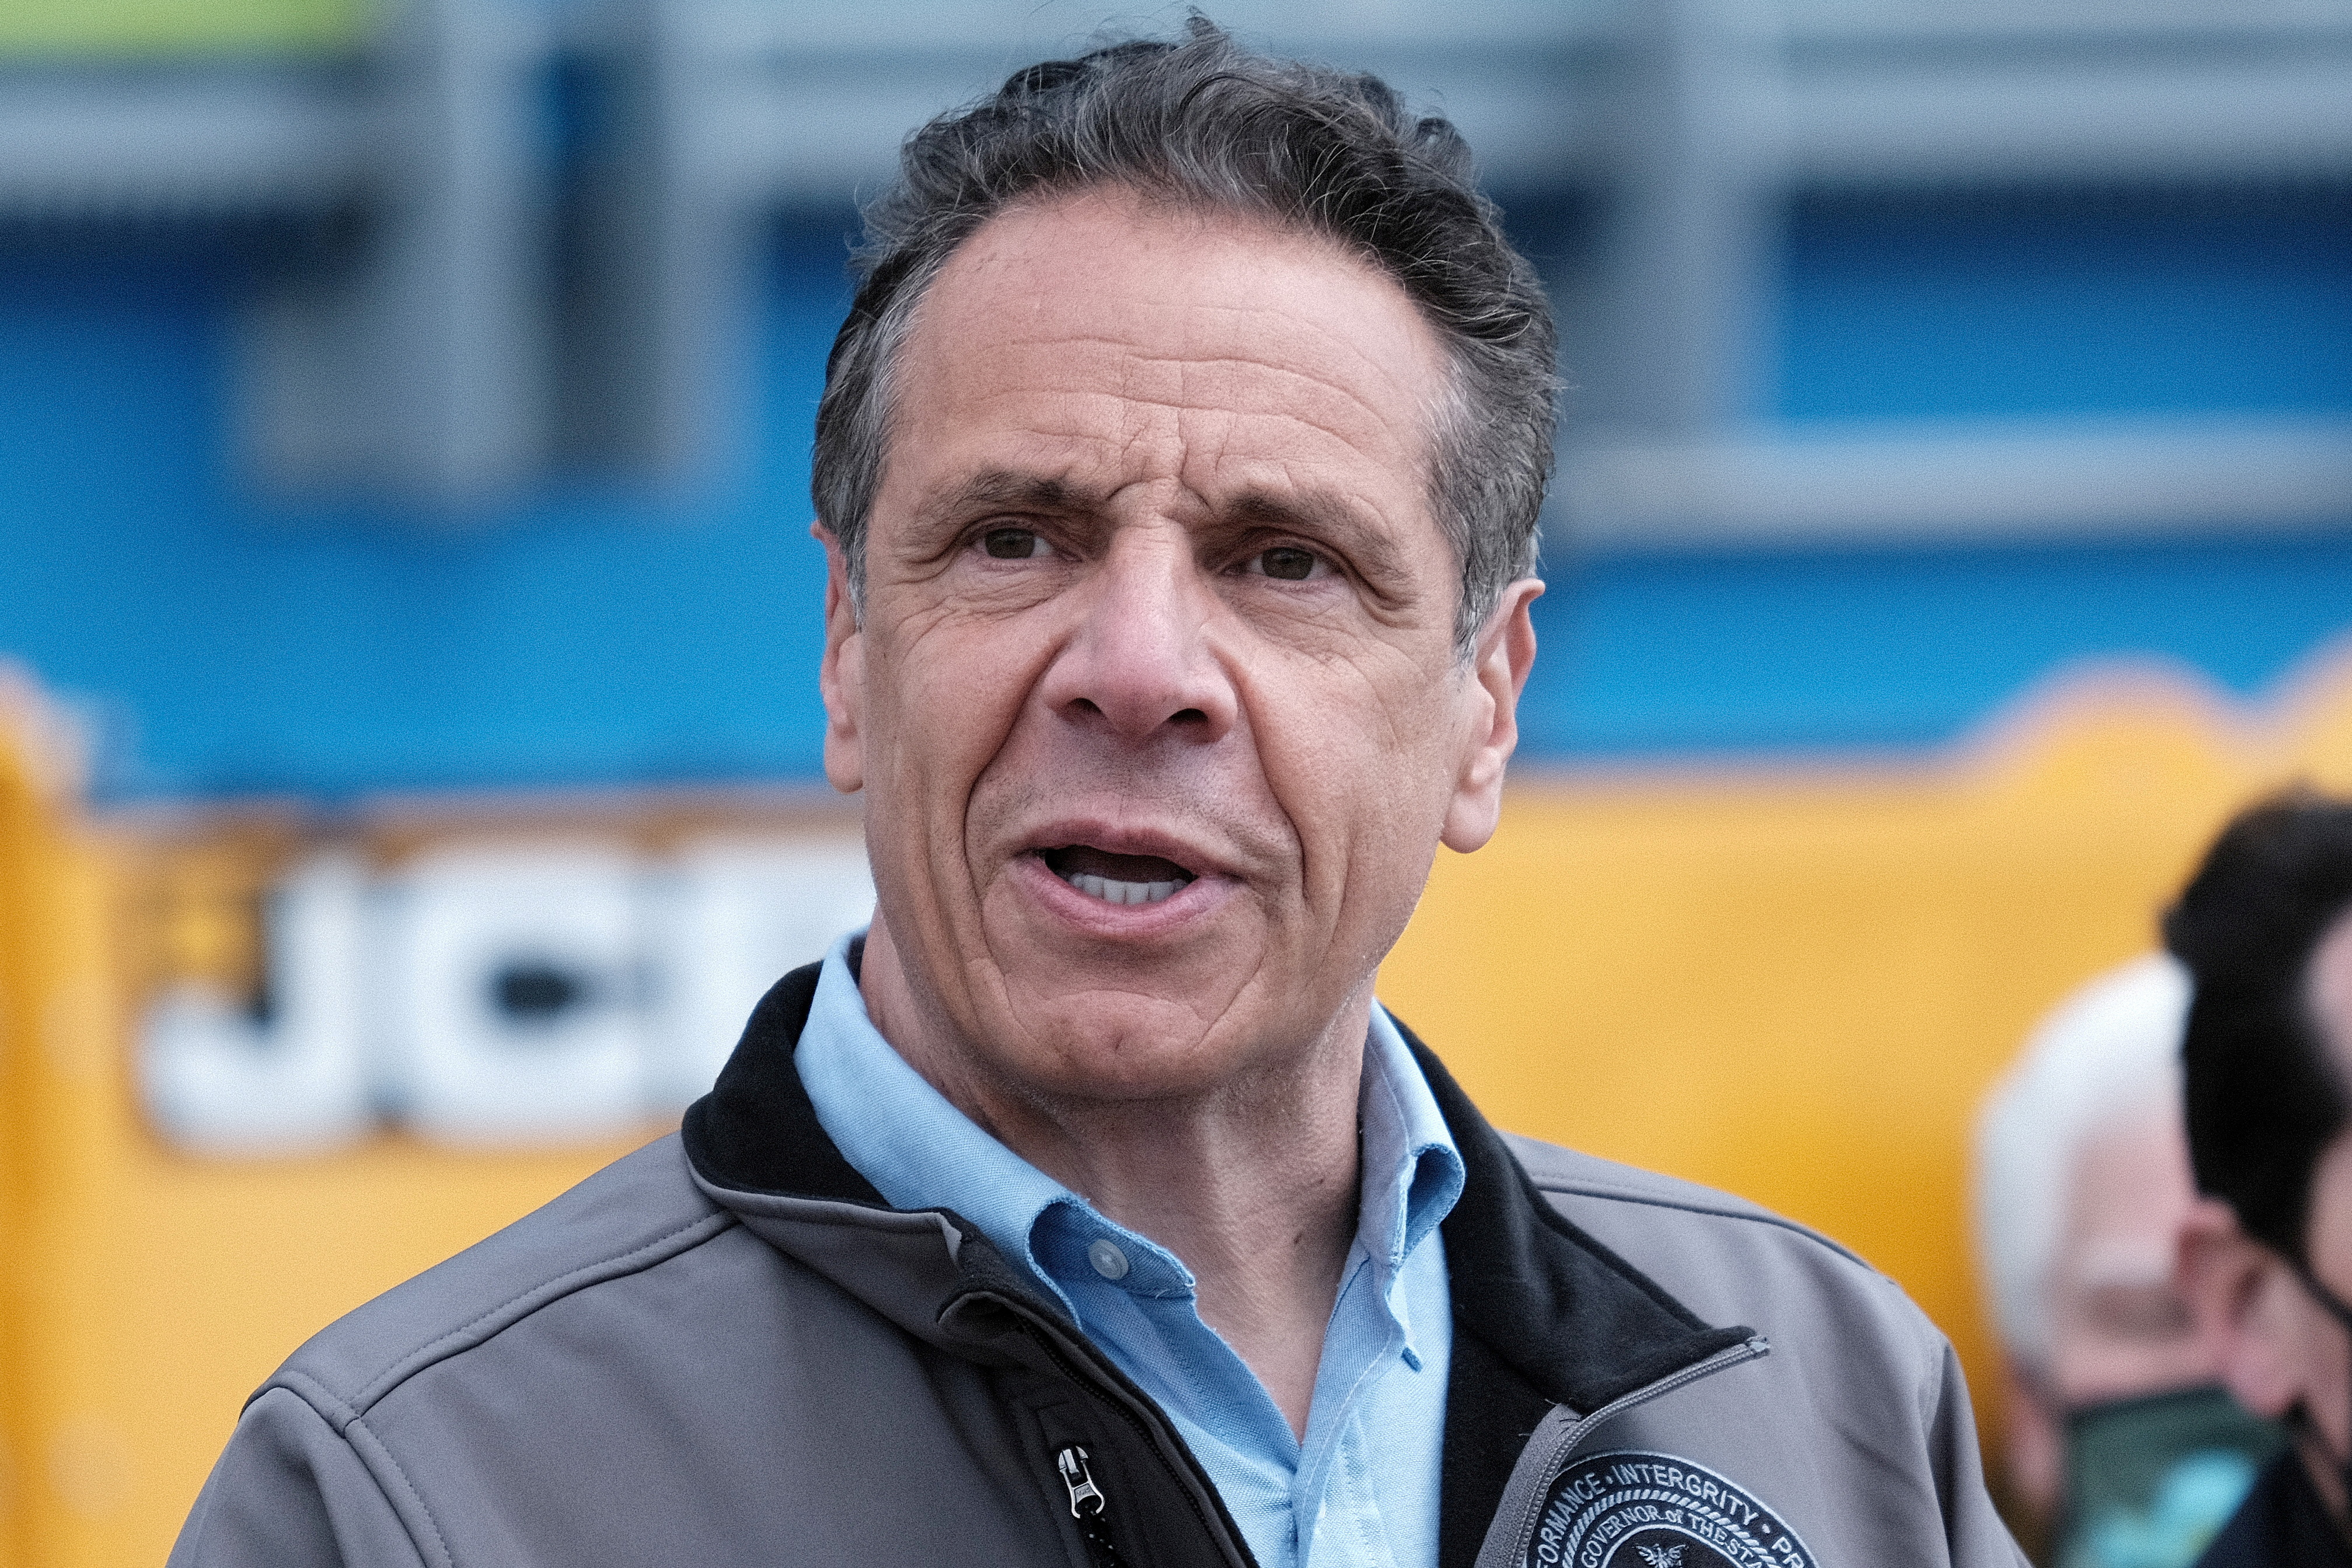 New York Governor Andrew Cuomo speaks during a ground breaking ceremony at the Bay Park Water Reclamation Facility in East Rockaway, New York, U.S., April 22, 2021. Spencer Platt/Pool via REUTERS